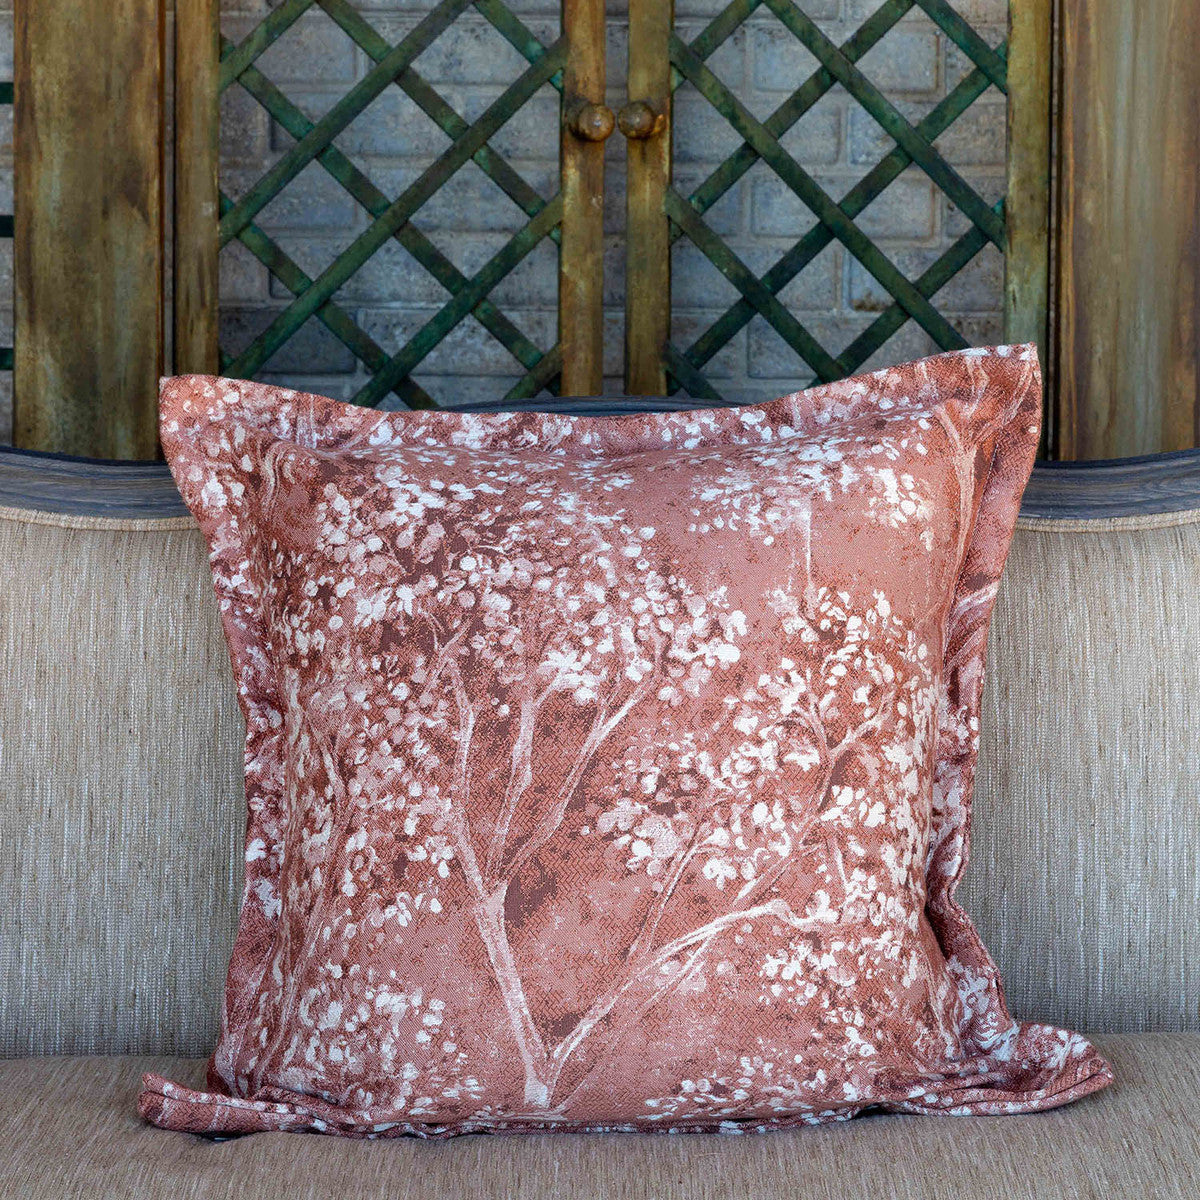 Lovecup Coral Hydrangea Pillow, Set of 2 L710